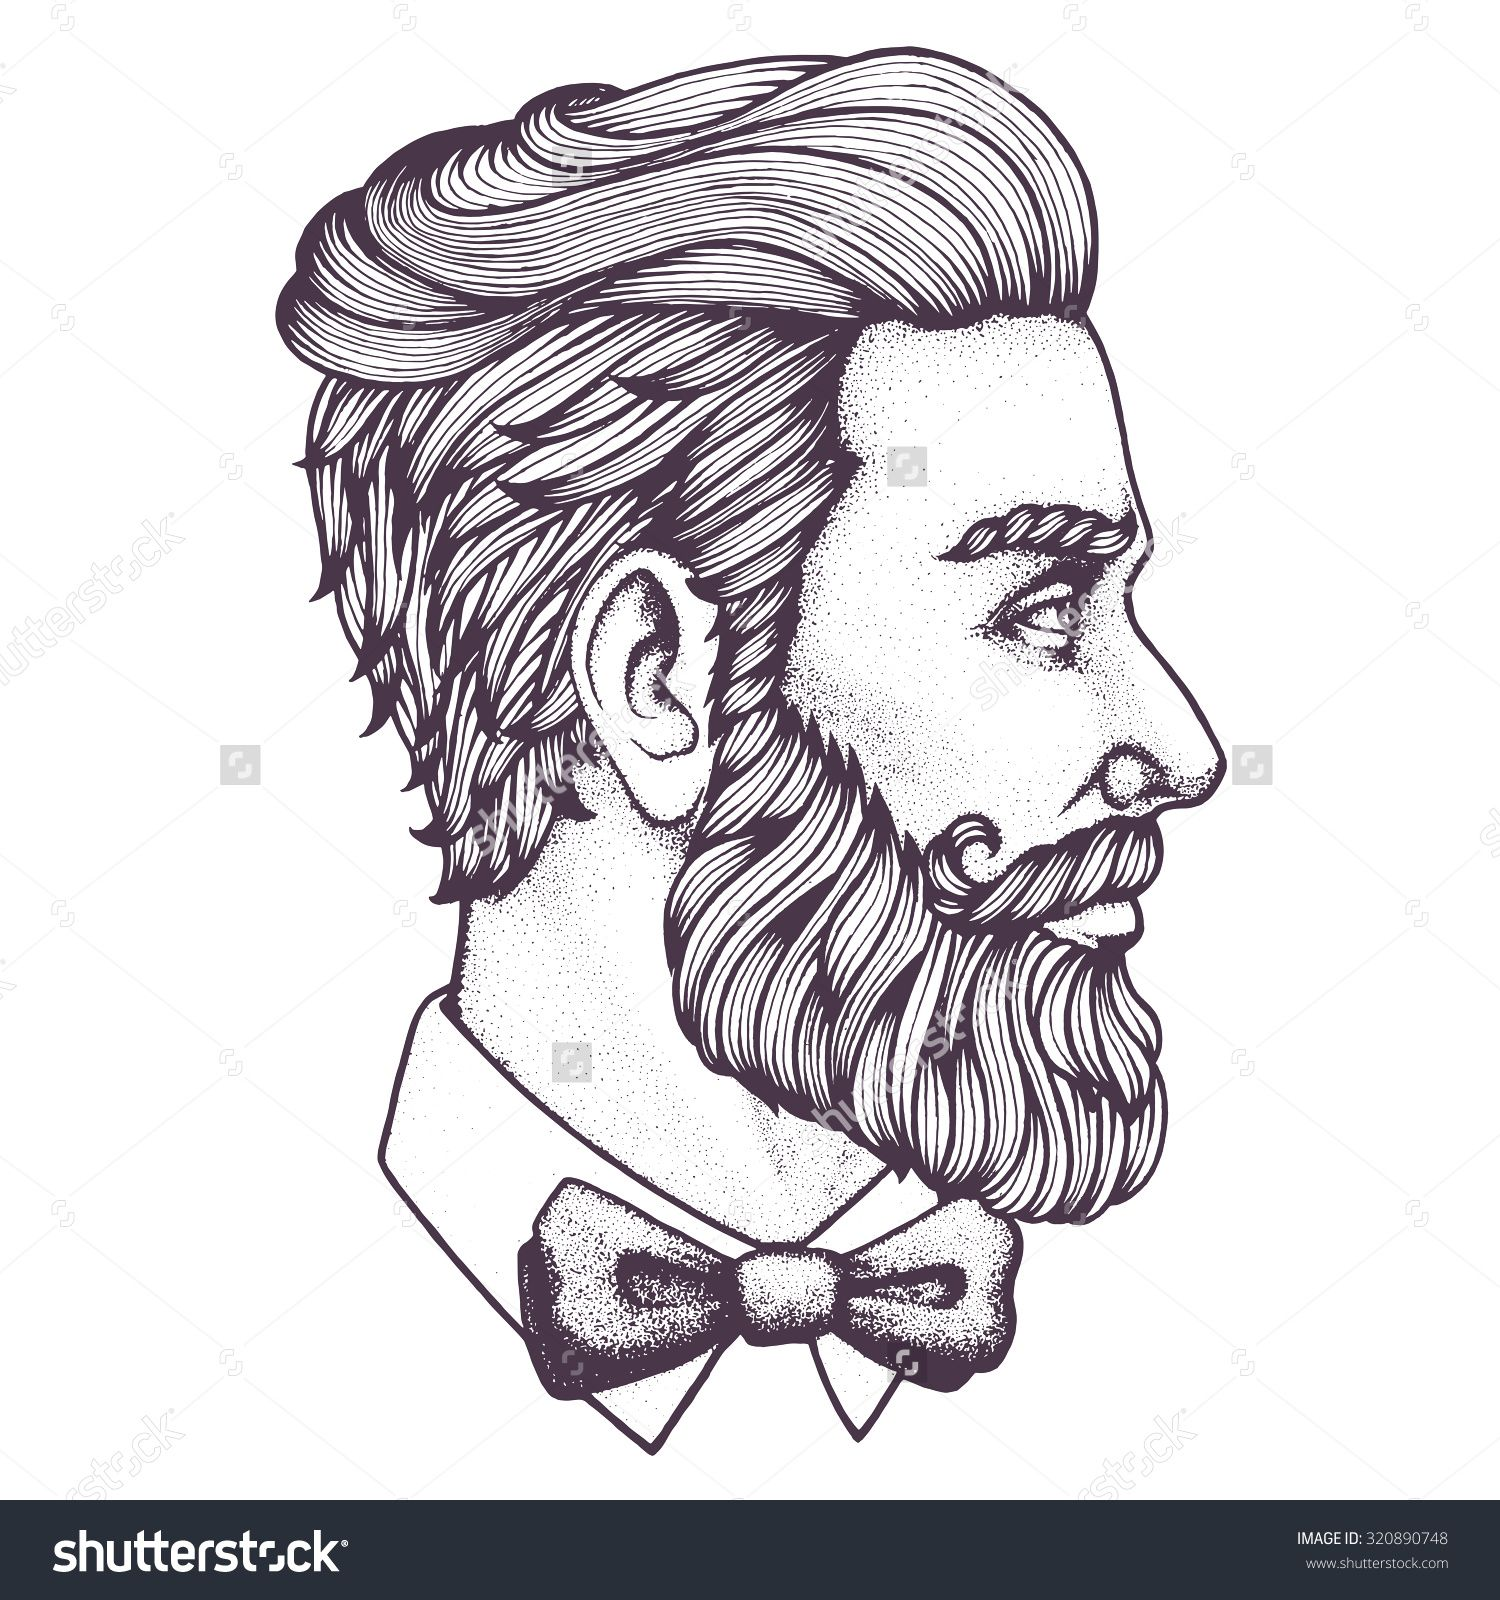 banner royalty free download Hand drawn portrait of bearded man side